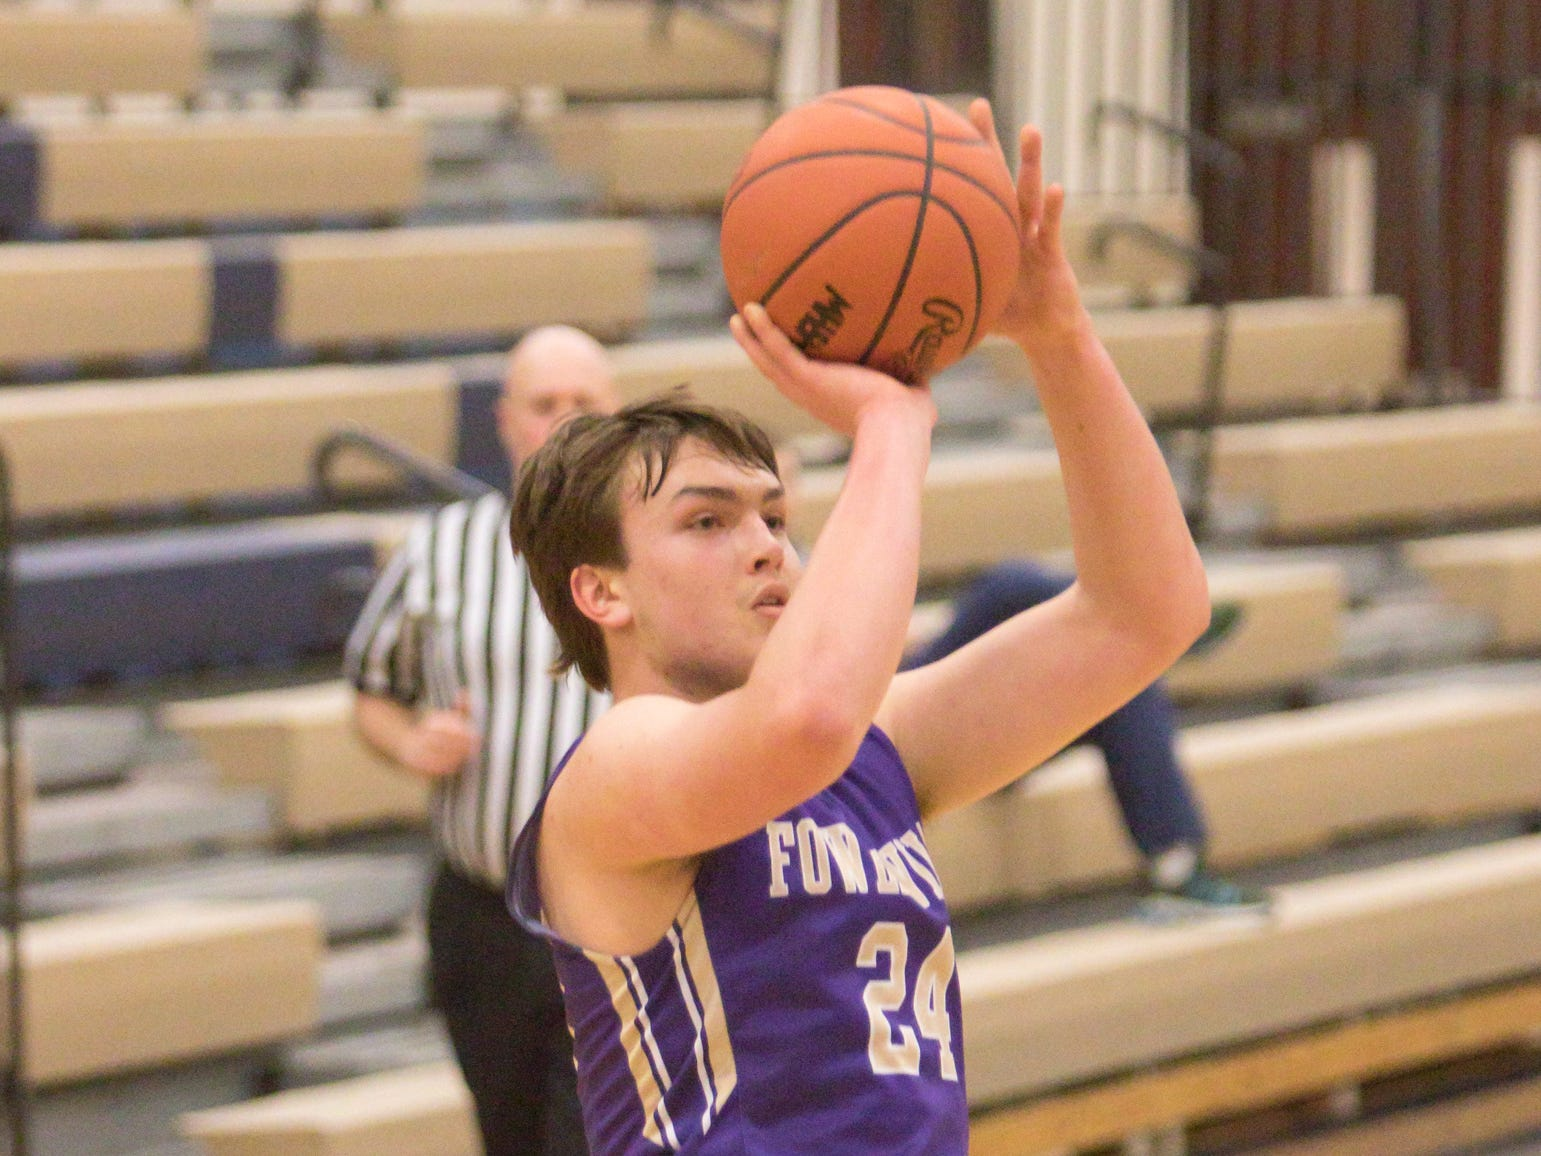 Fowlerville's Brendan Young shoots in the tournament game against Dexter Friday, Dec. 28, 2018.